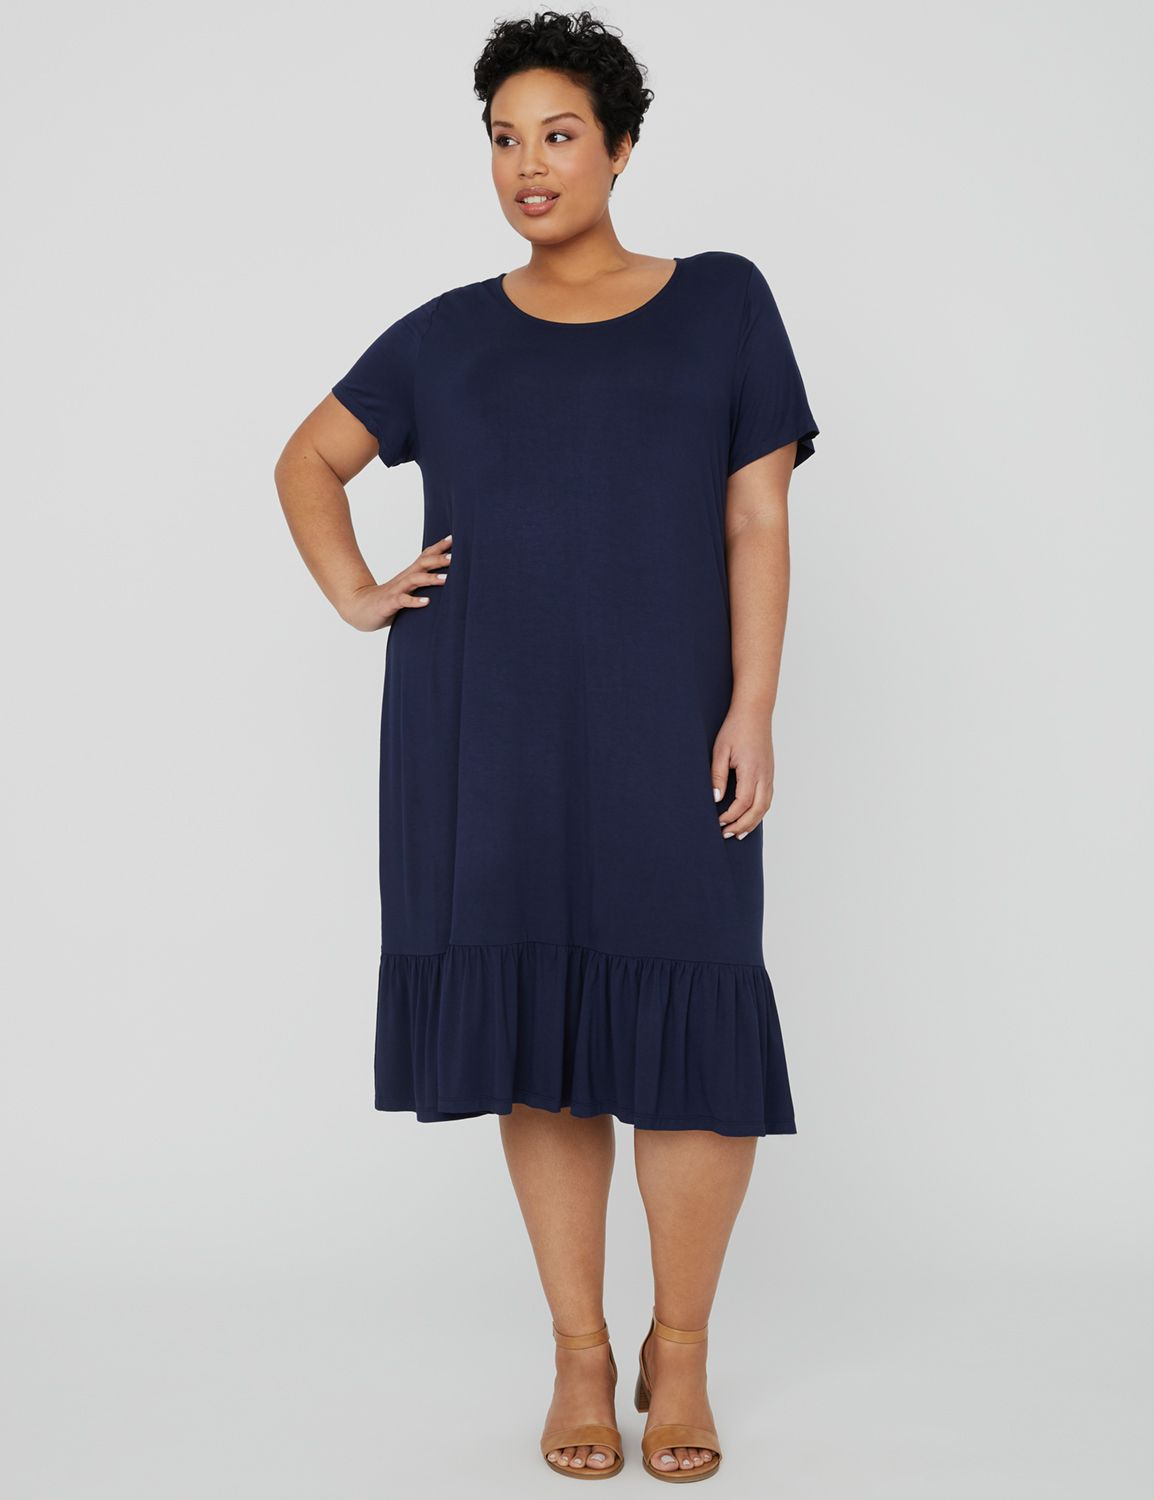 Exhale T-Shirt A-Line Dress 1090955 T-shirt Dress with Flounce MP-300102404